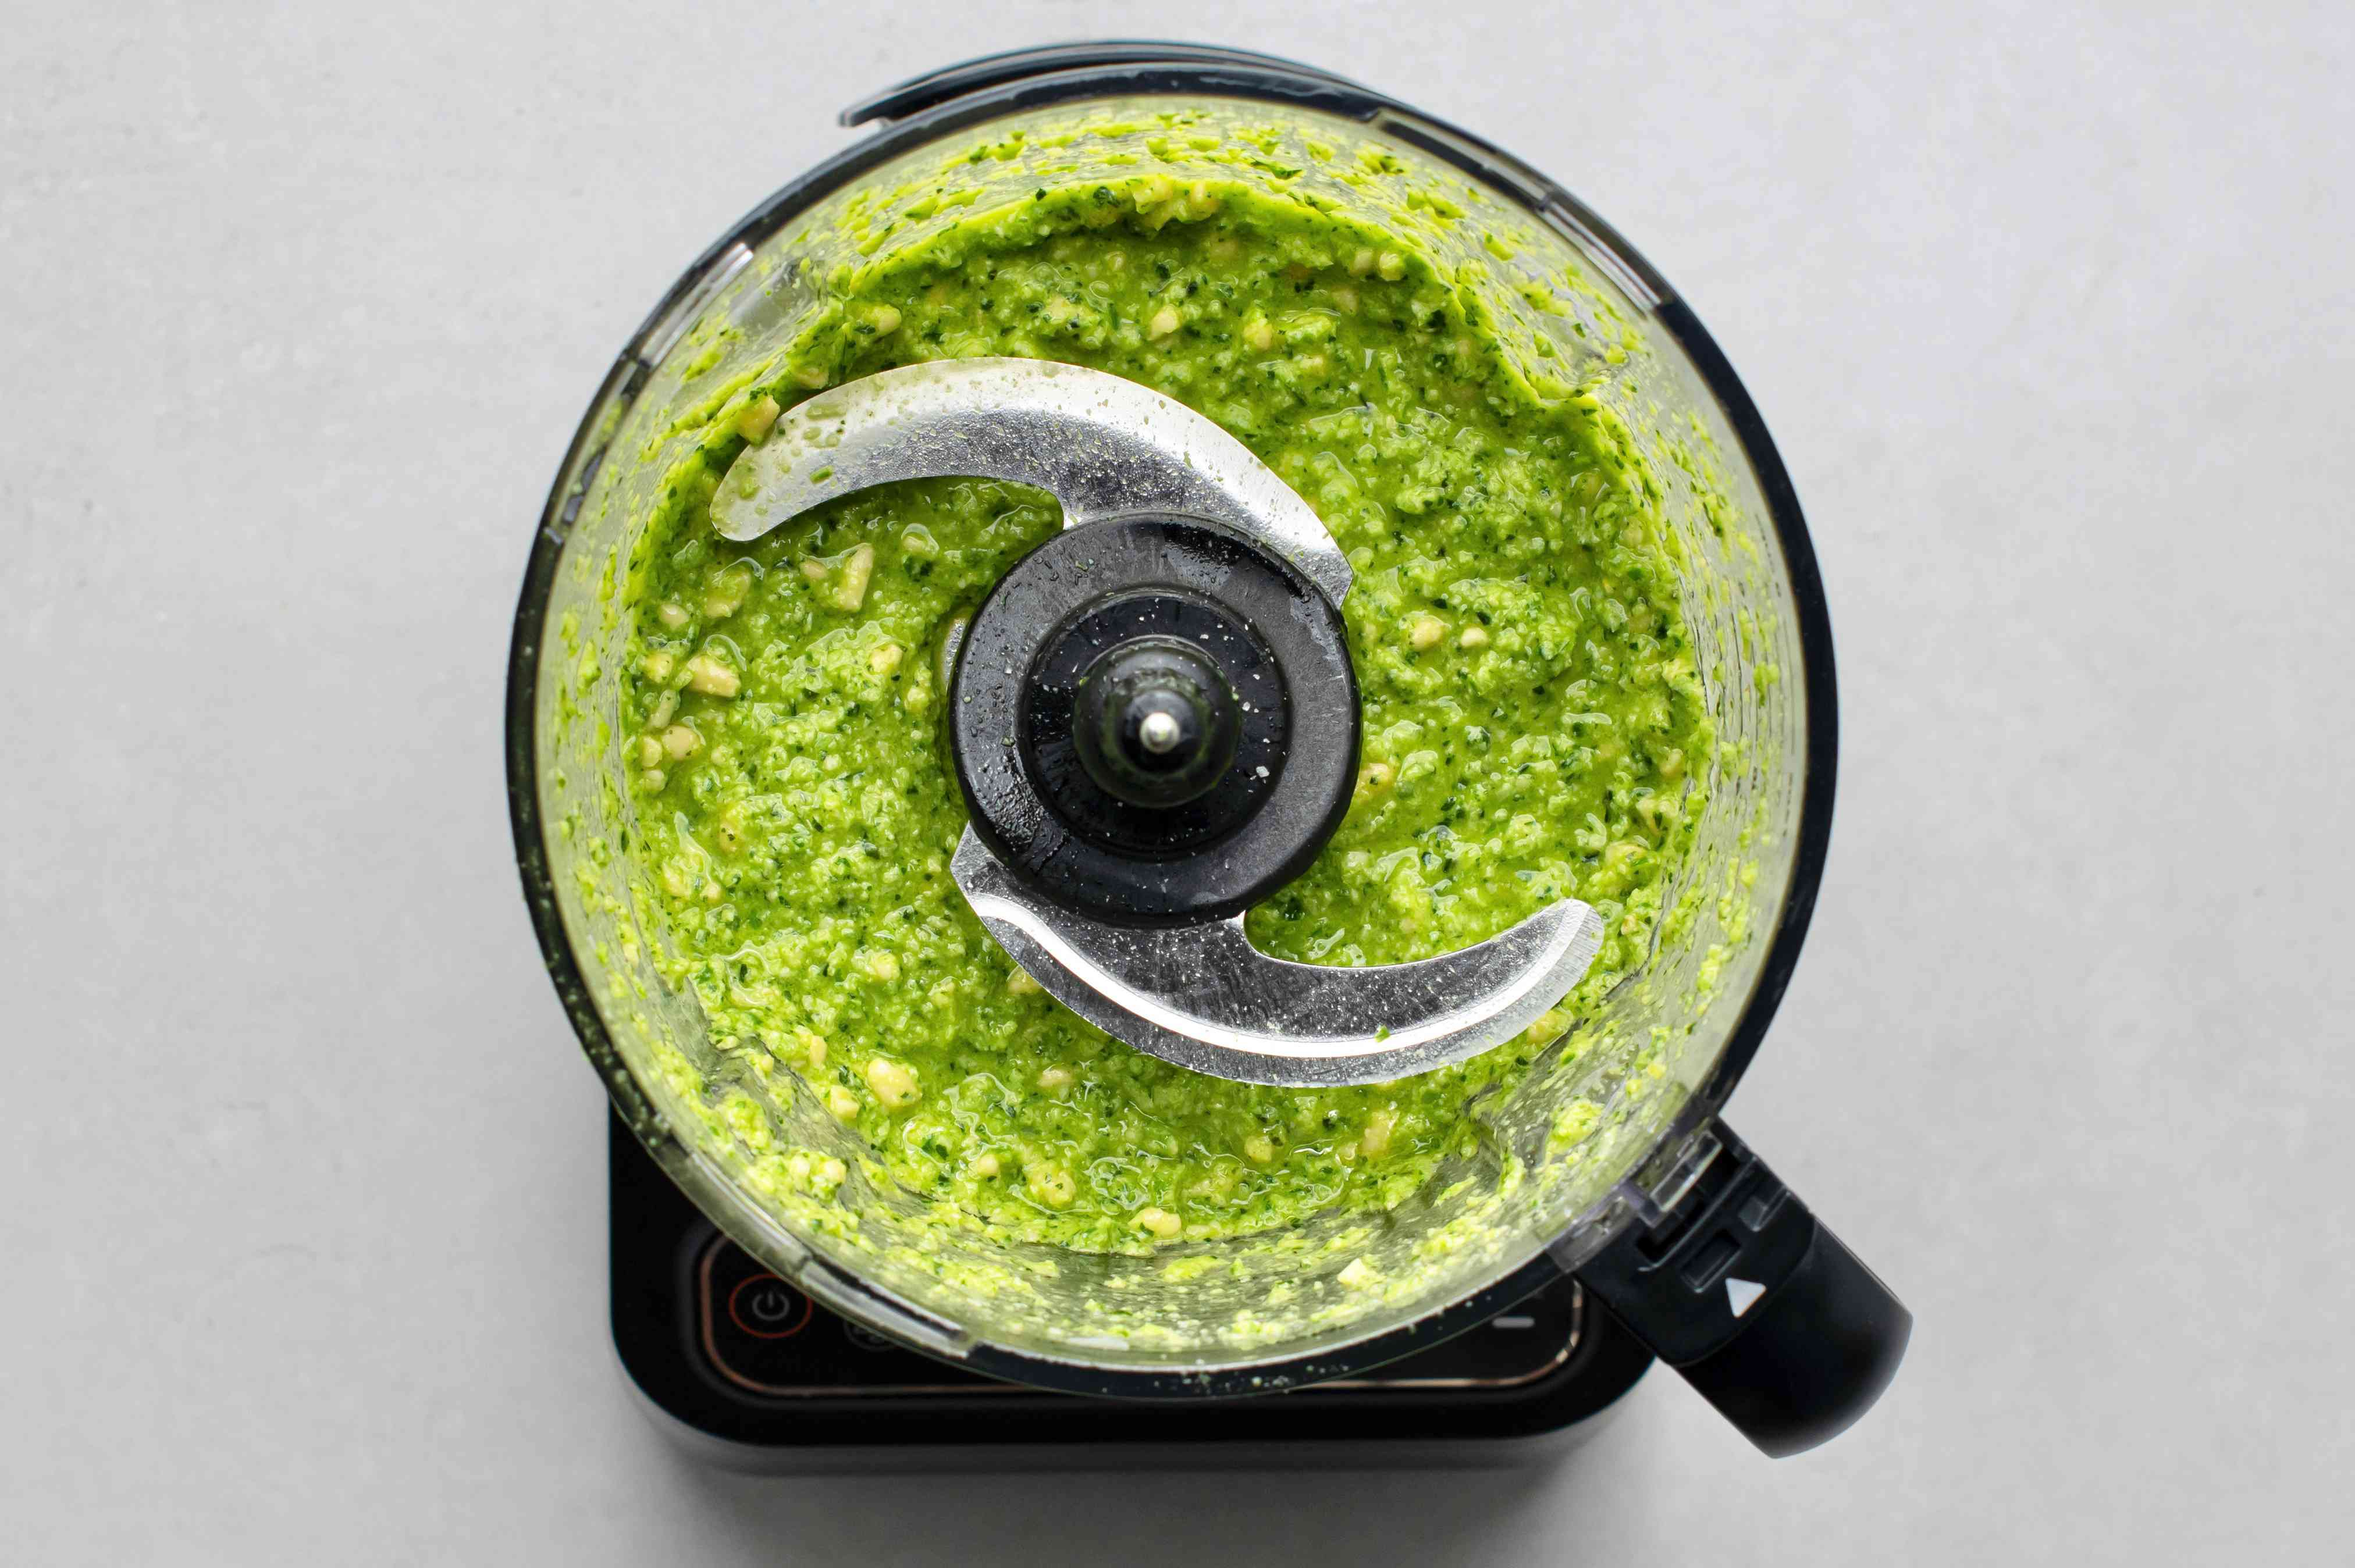 Add pine nuts to the pesto mixture in the food processor